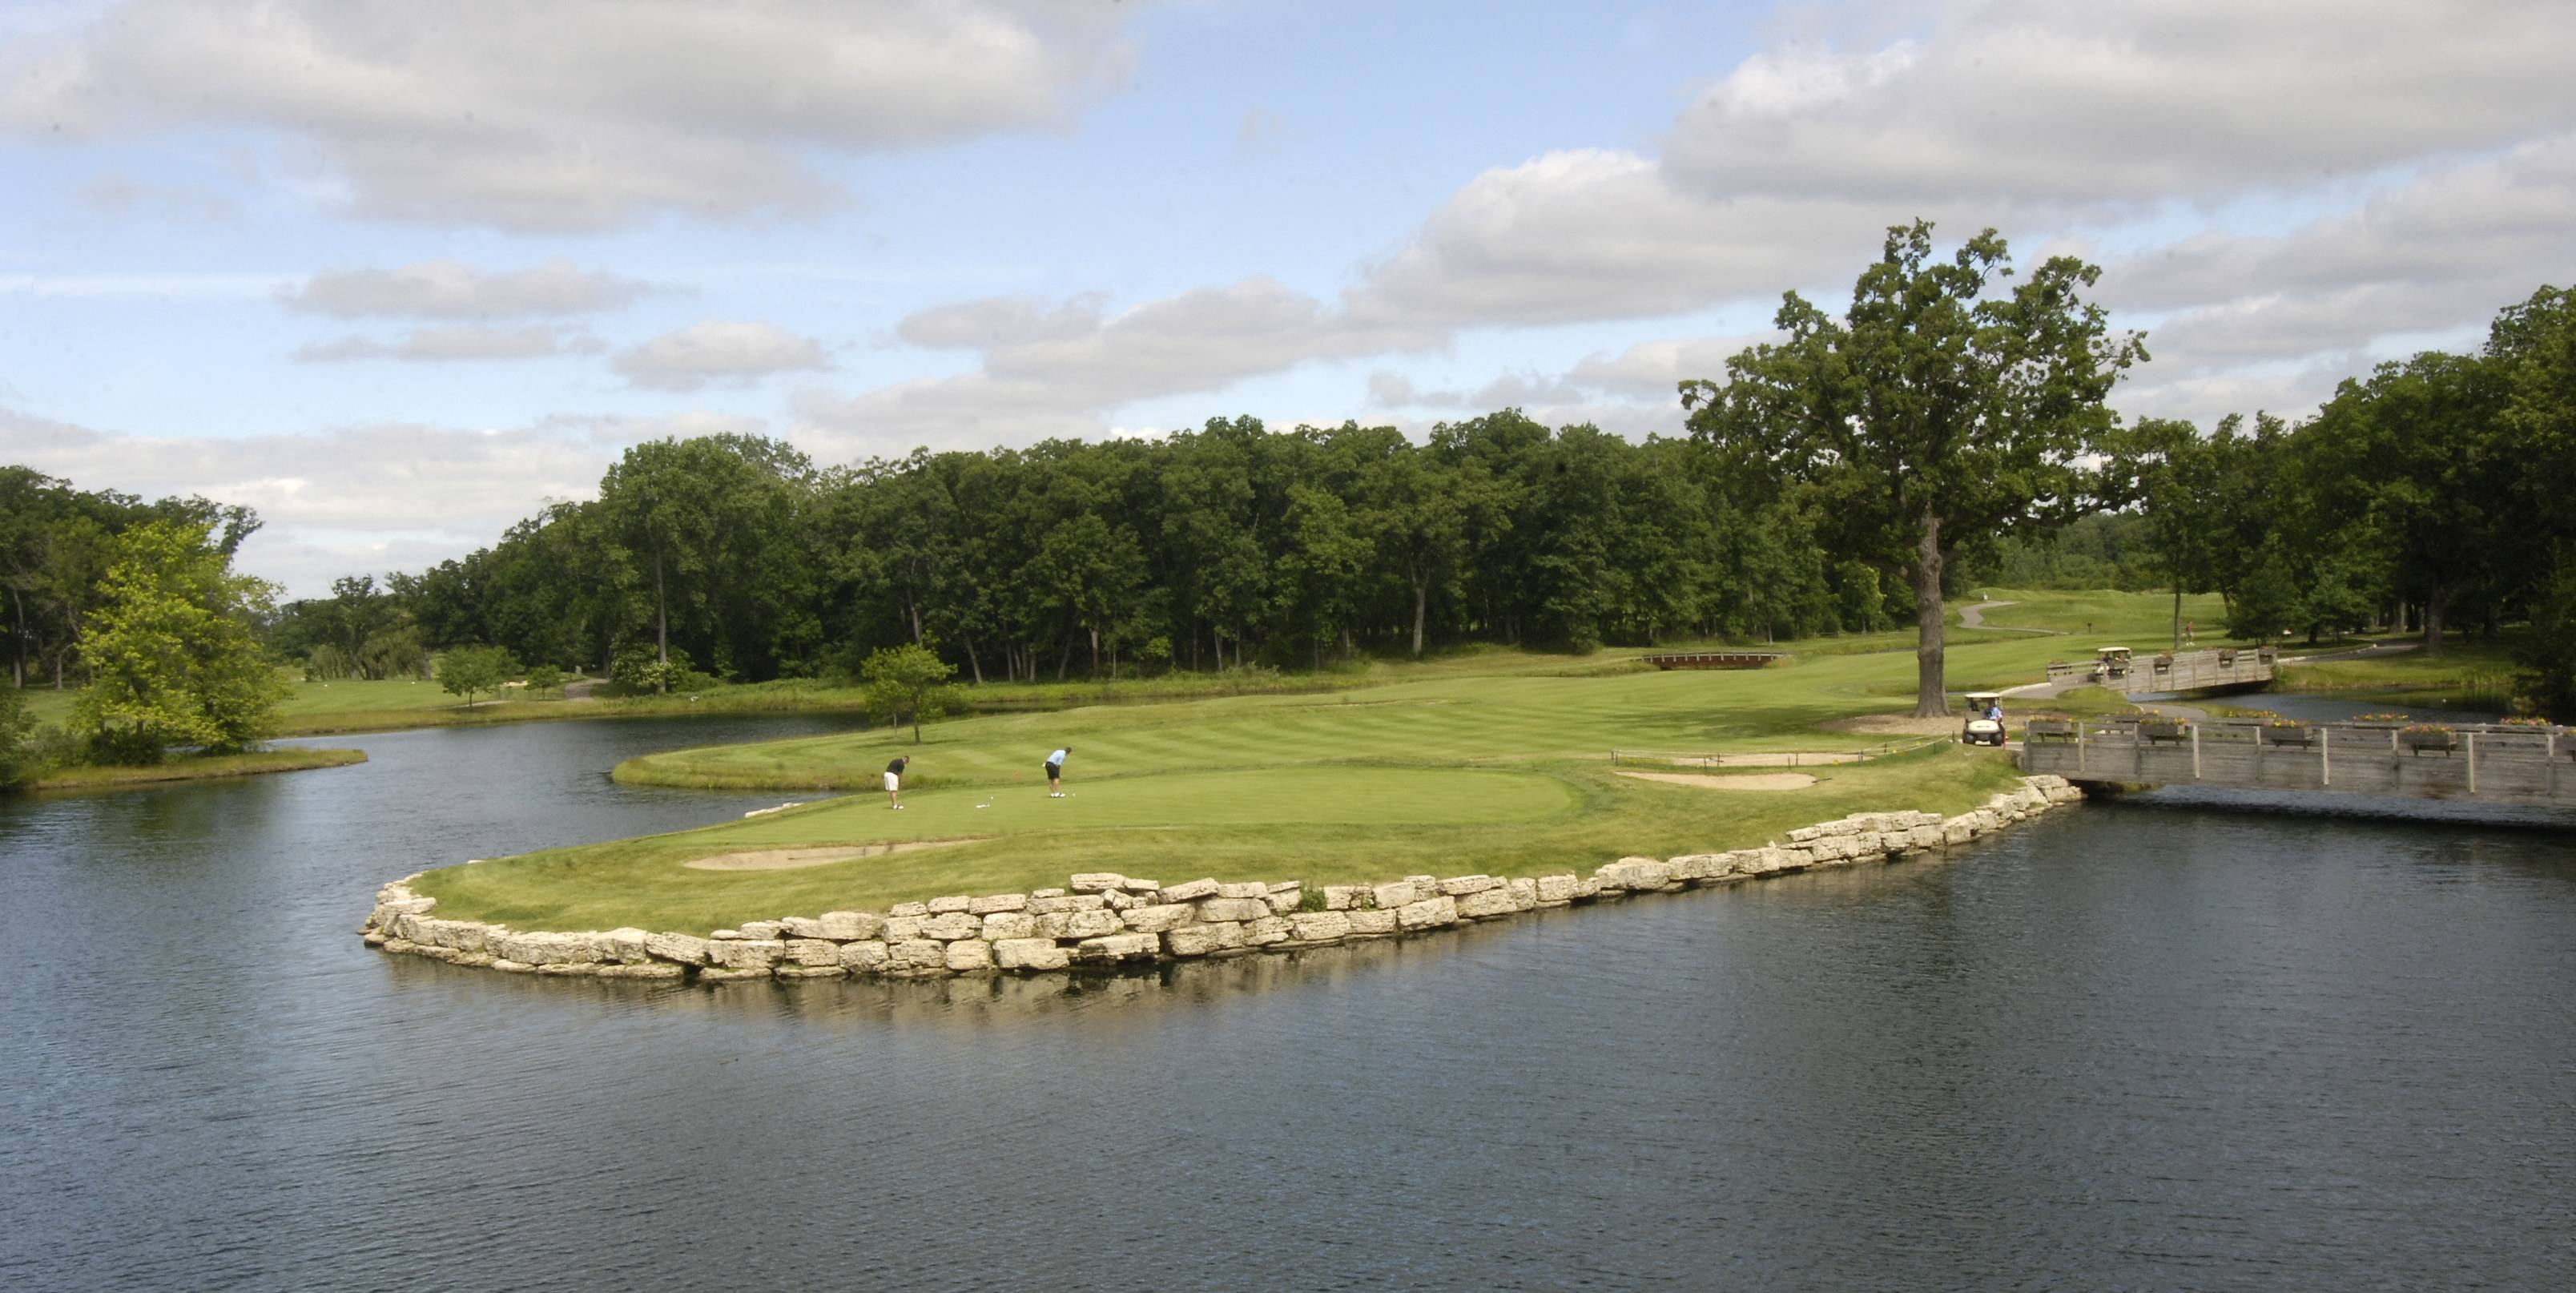 The ninth green of the Lakeside course at Cantigny Golf Course.